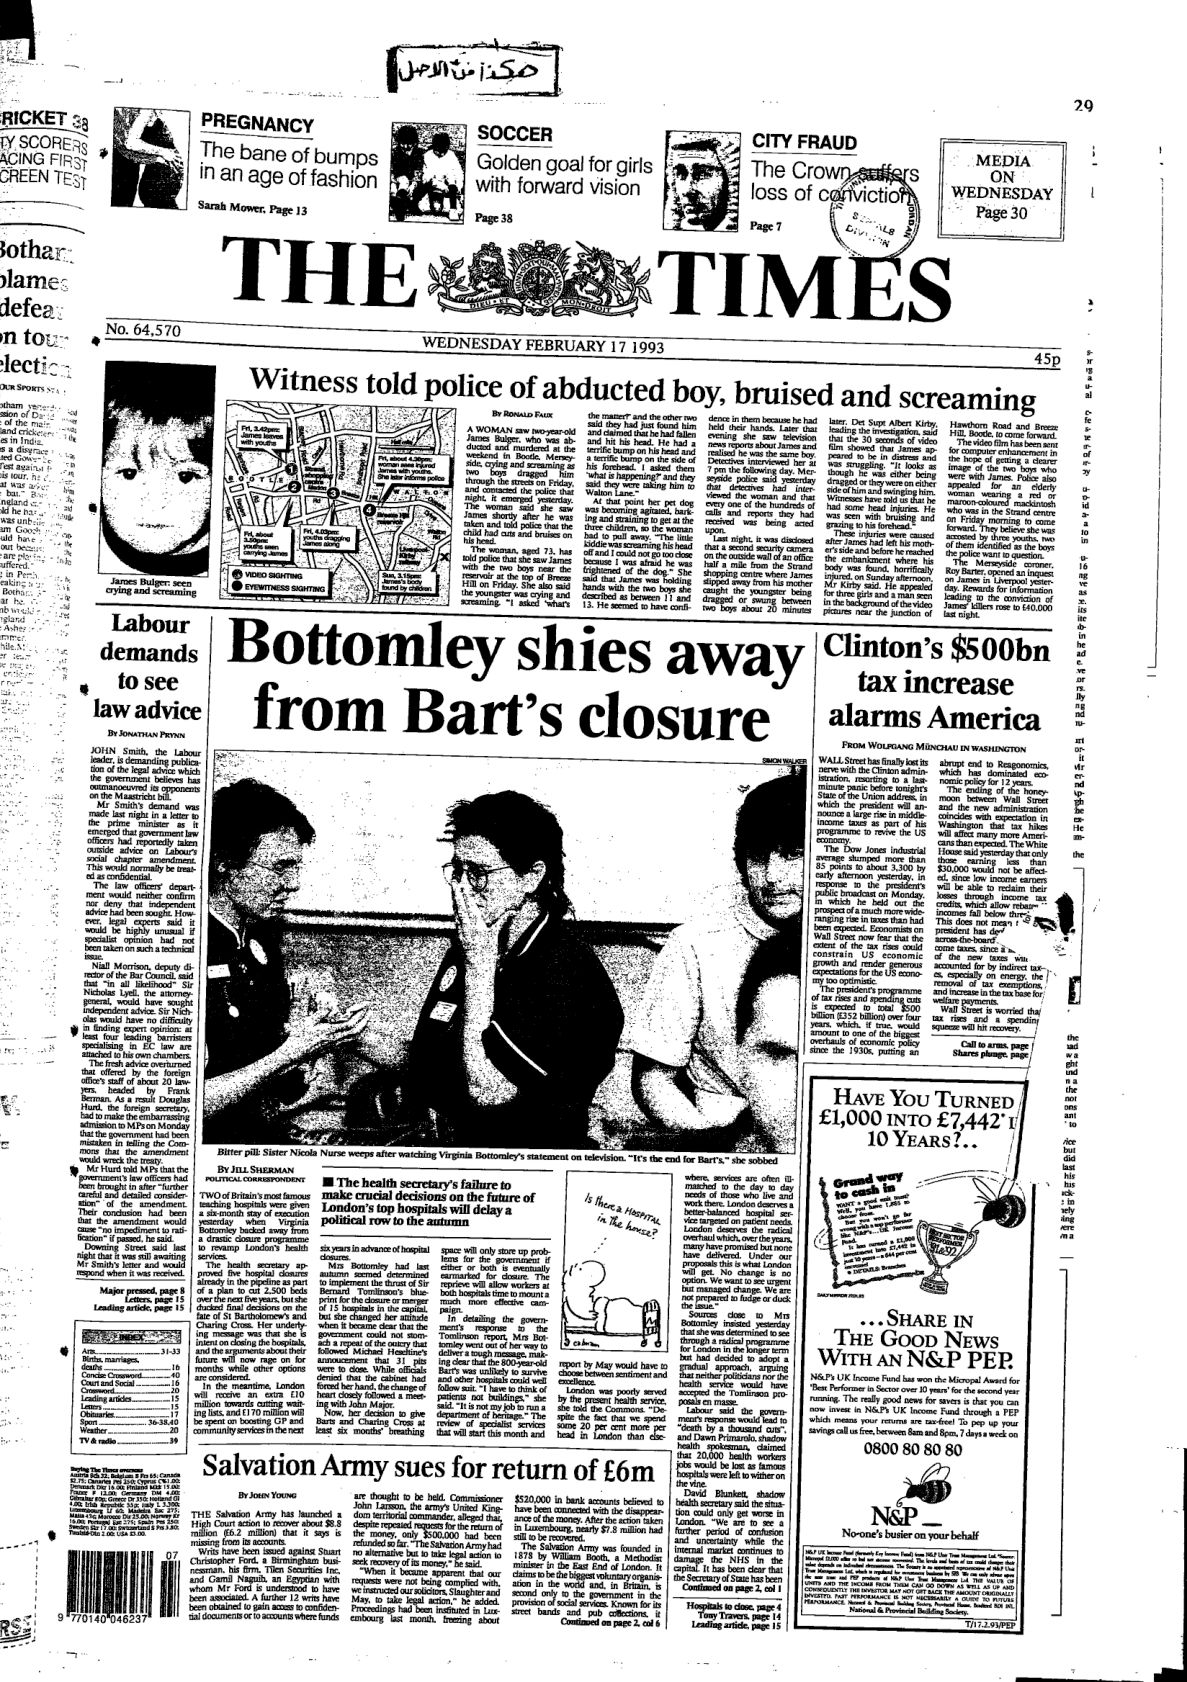 The Times Issue No. 64570. 1993-02-17, UK